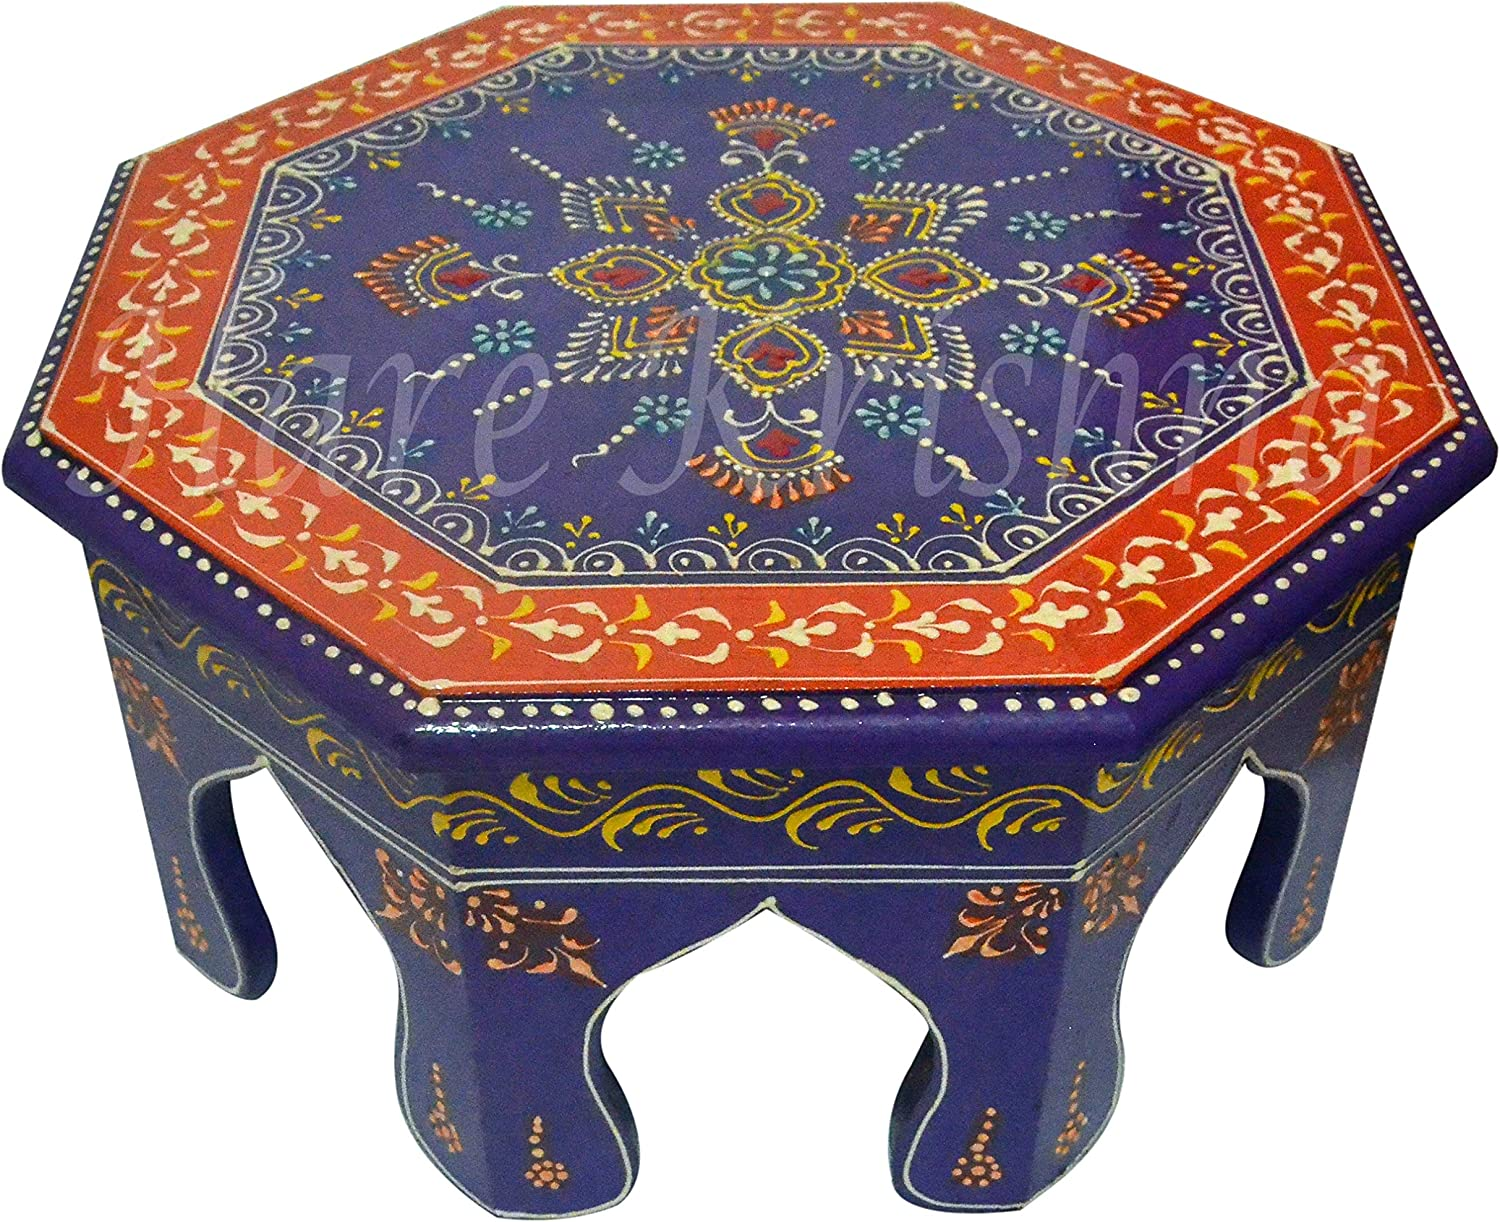 Handmade Wood Low Table Side Stool Round Bajot Chowki (Purple) 12 x 12 x 6 Inches